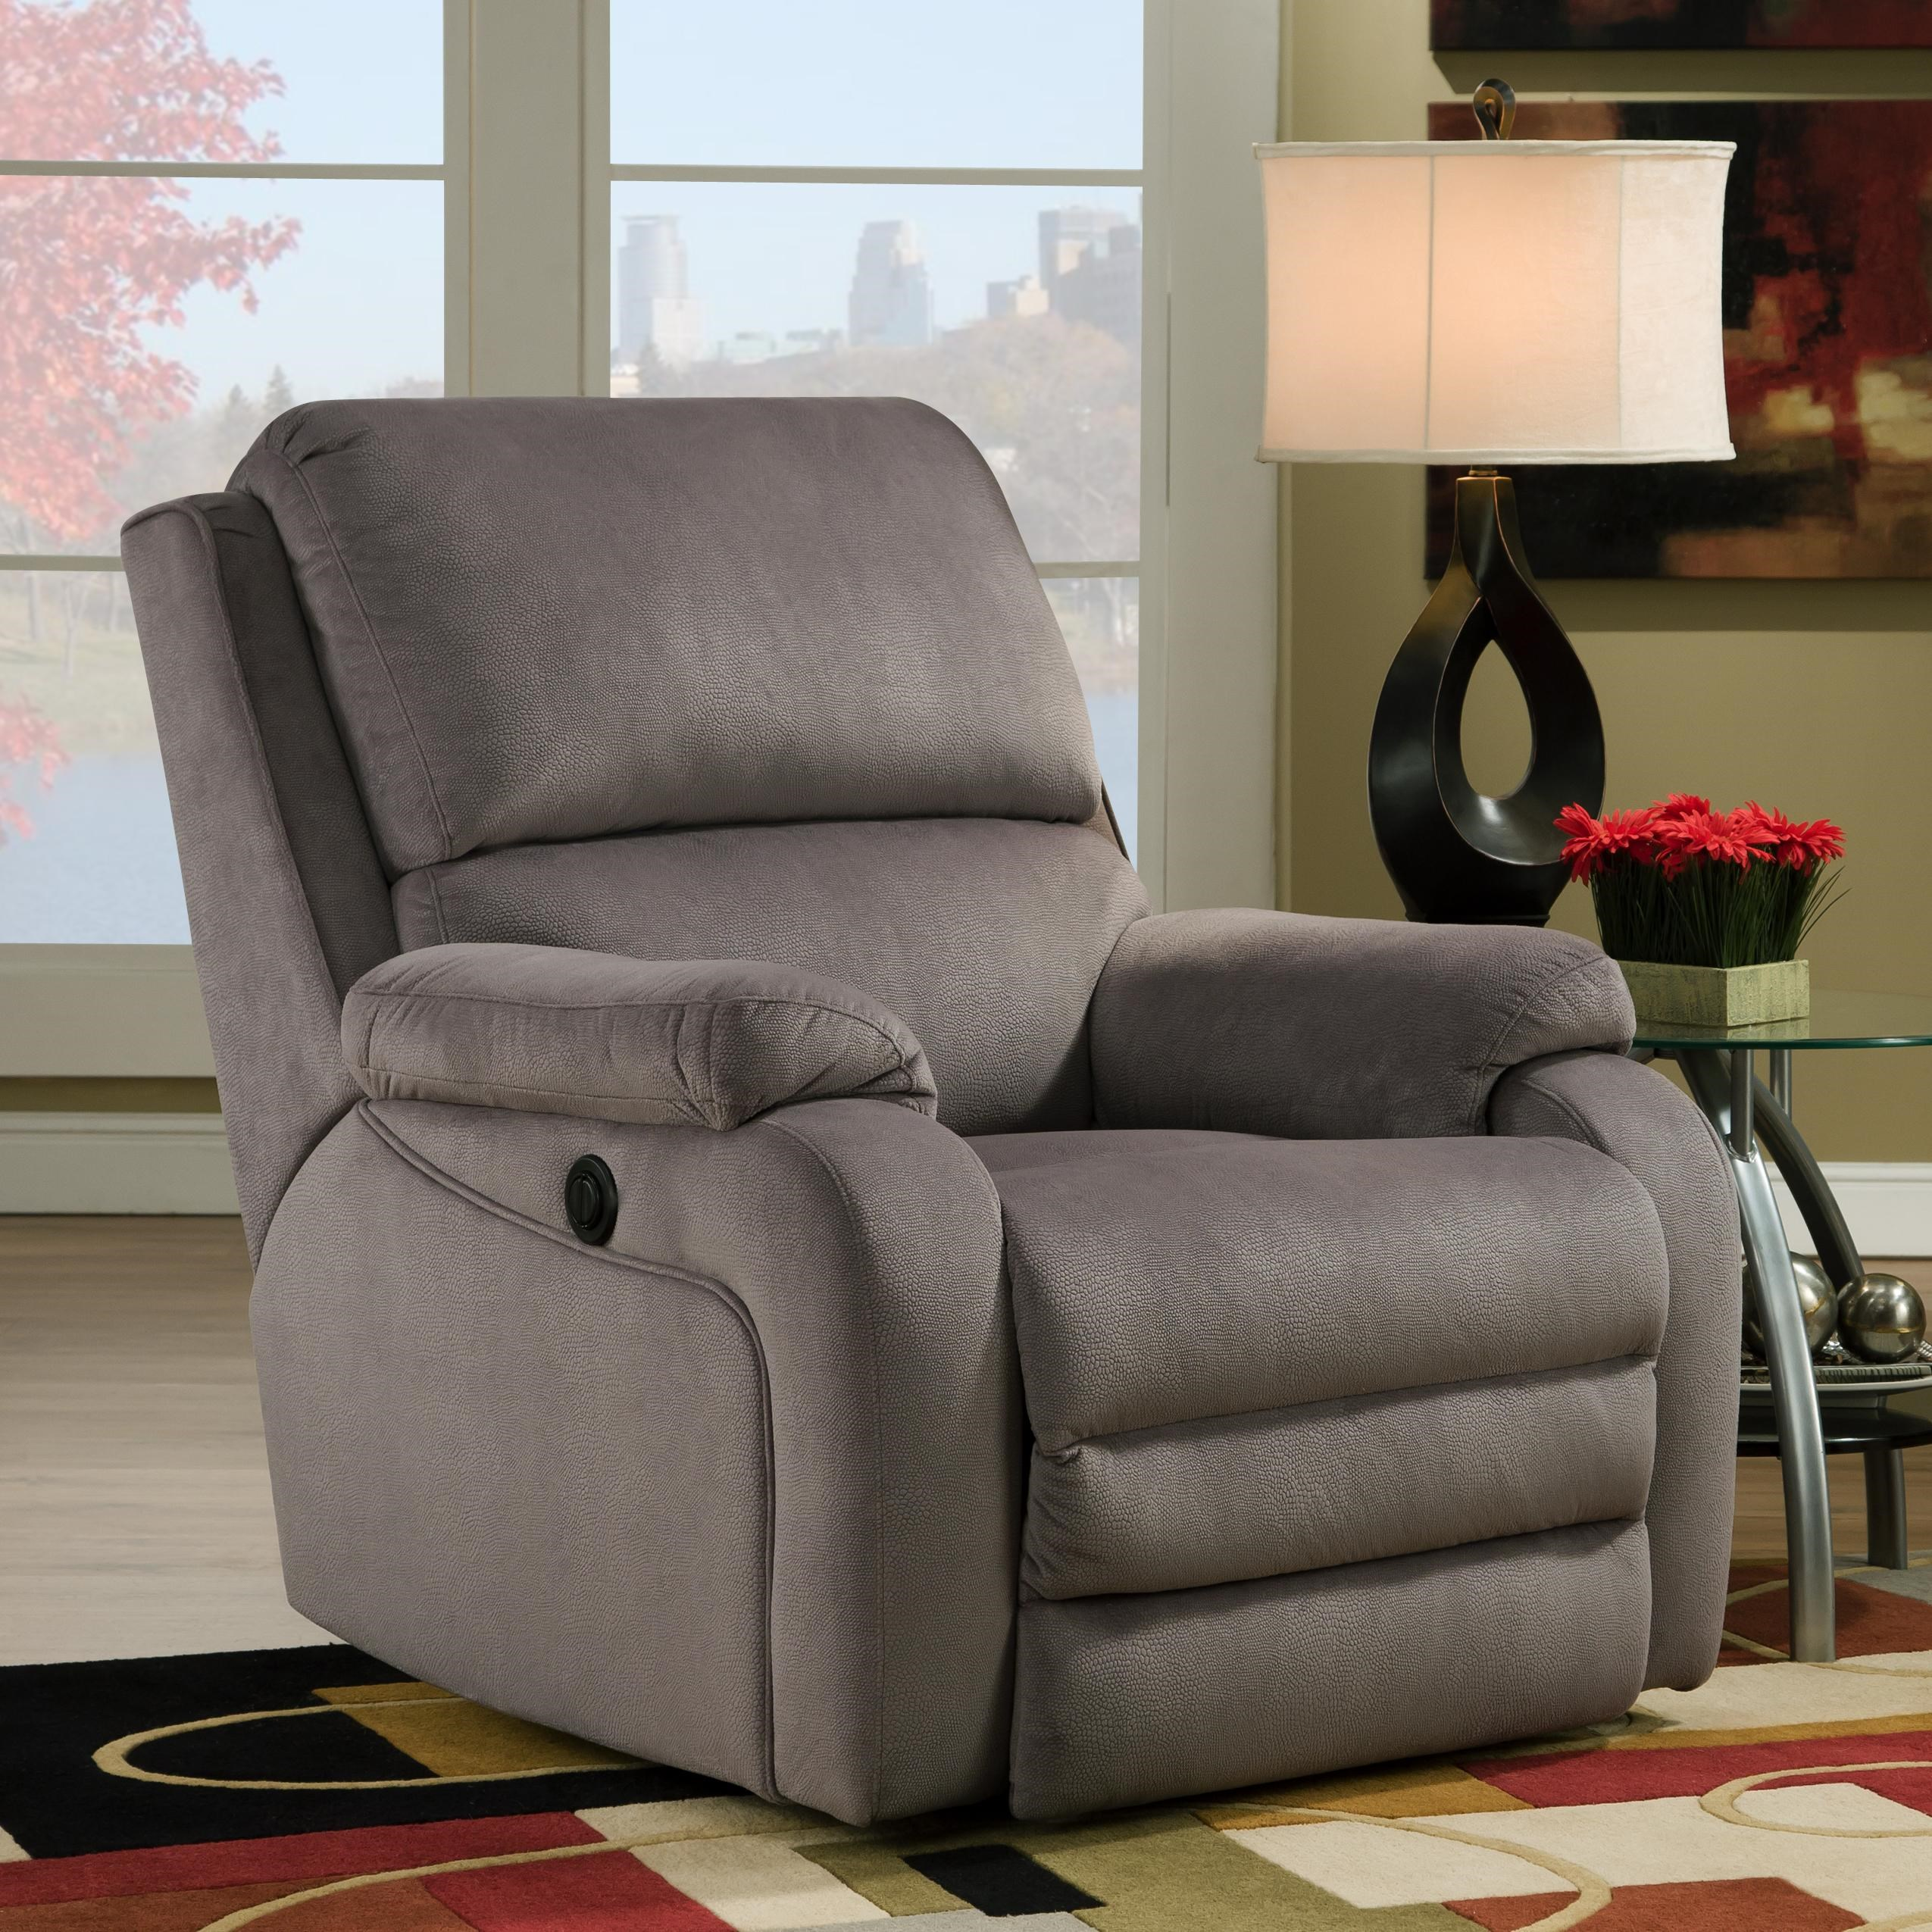 Recliner Shown May Not Represent Exact Features Indicated   Southern Motion  Furniture Dealers Virginia